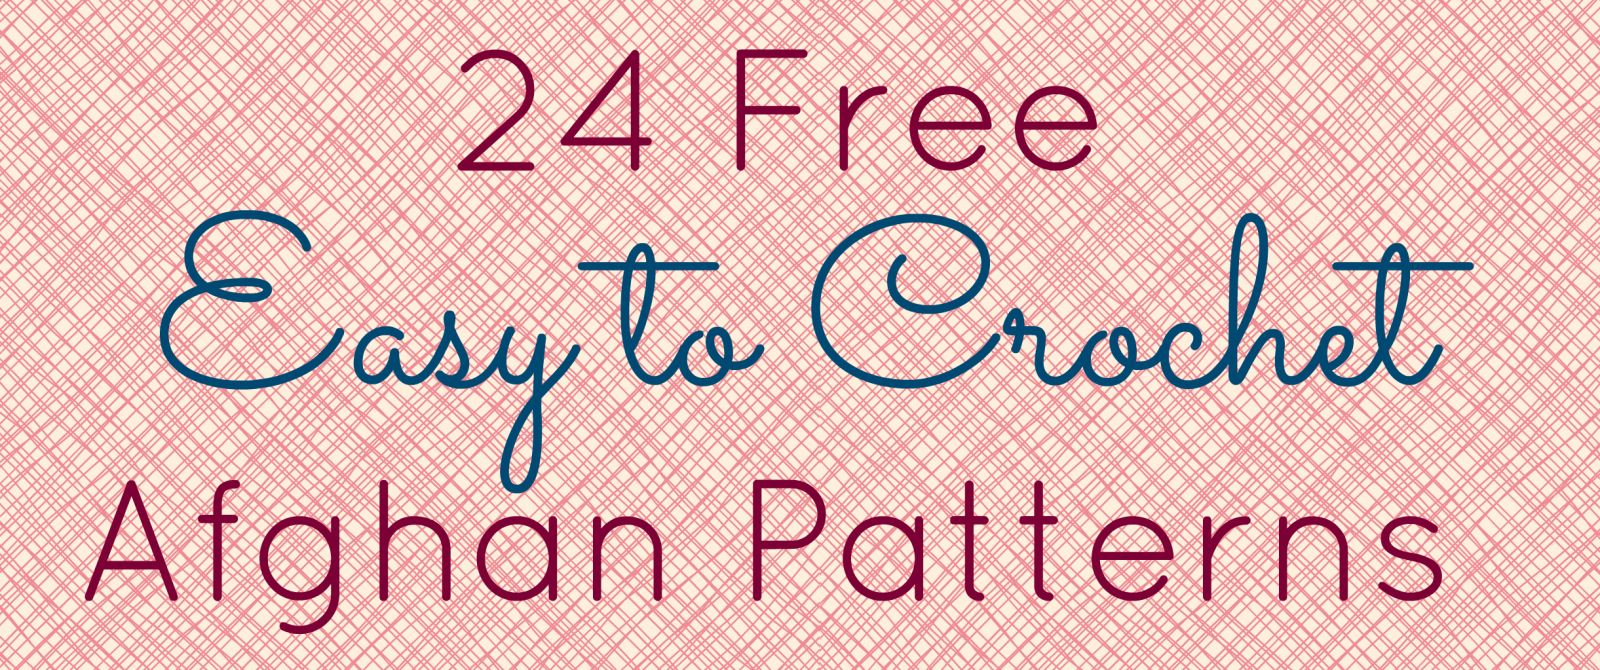 Just Updated: 24 Free & Easy Patterns - Stitch and Unwind